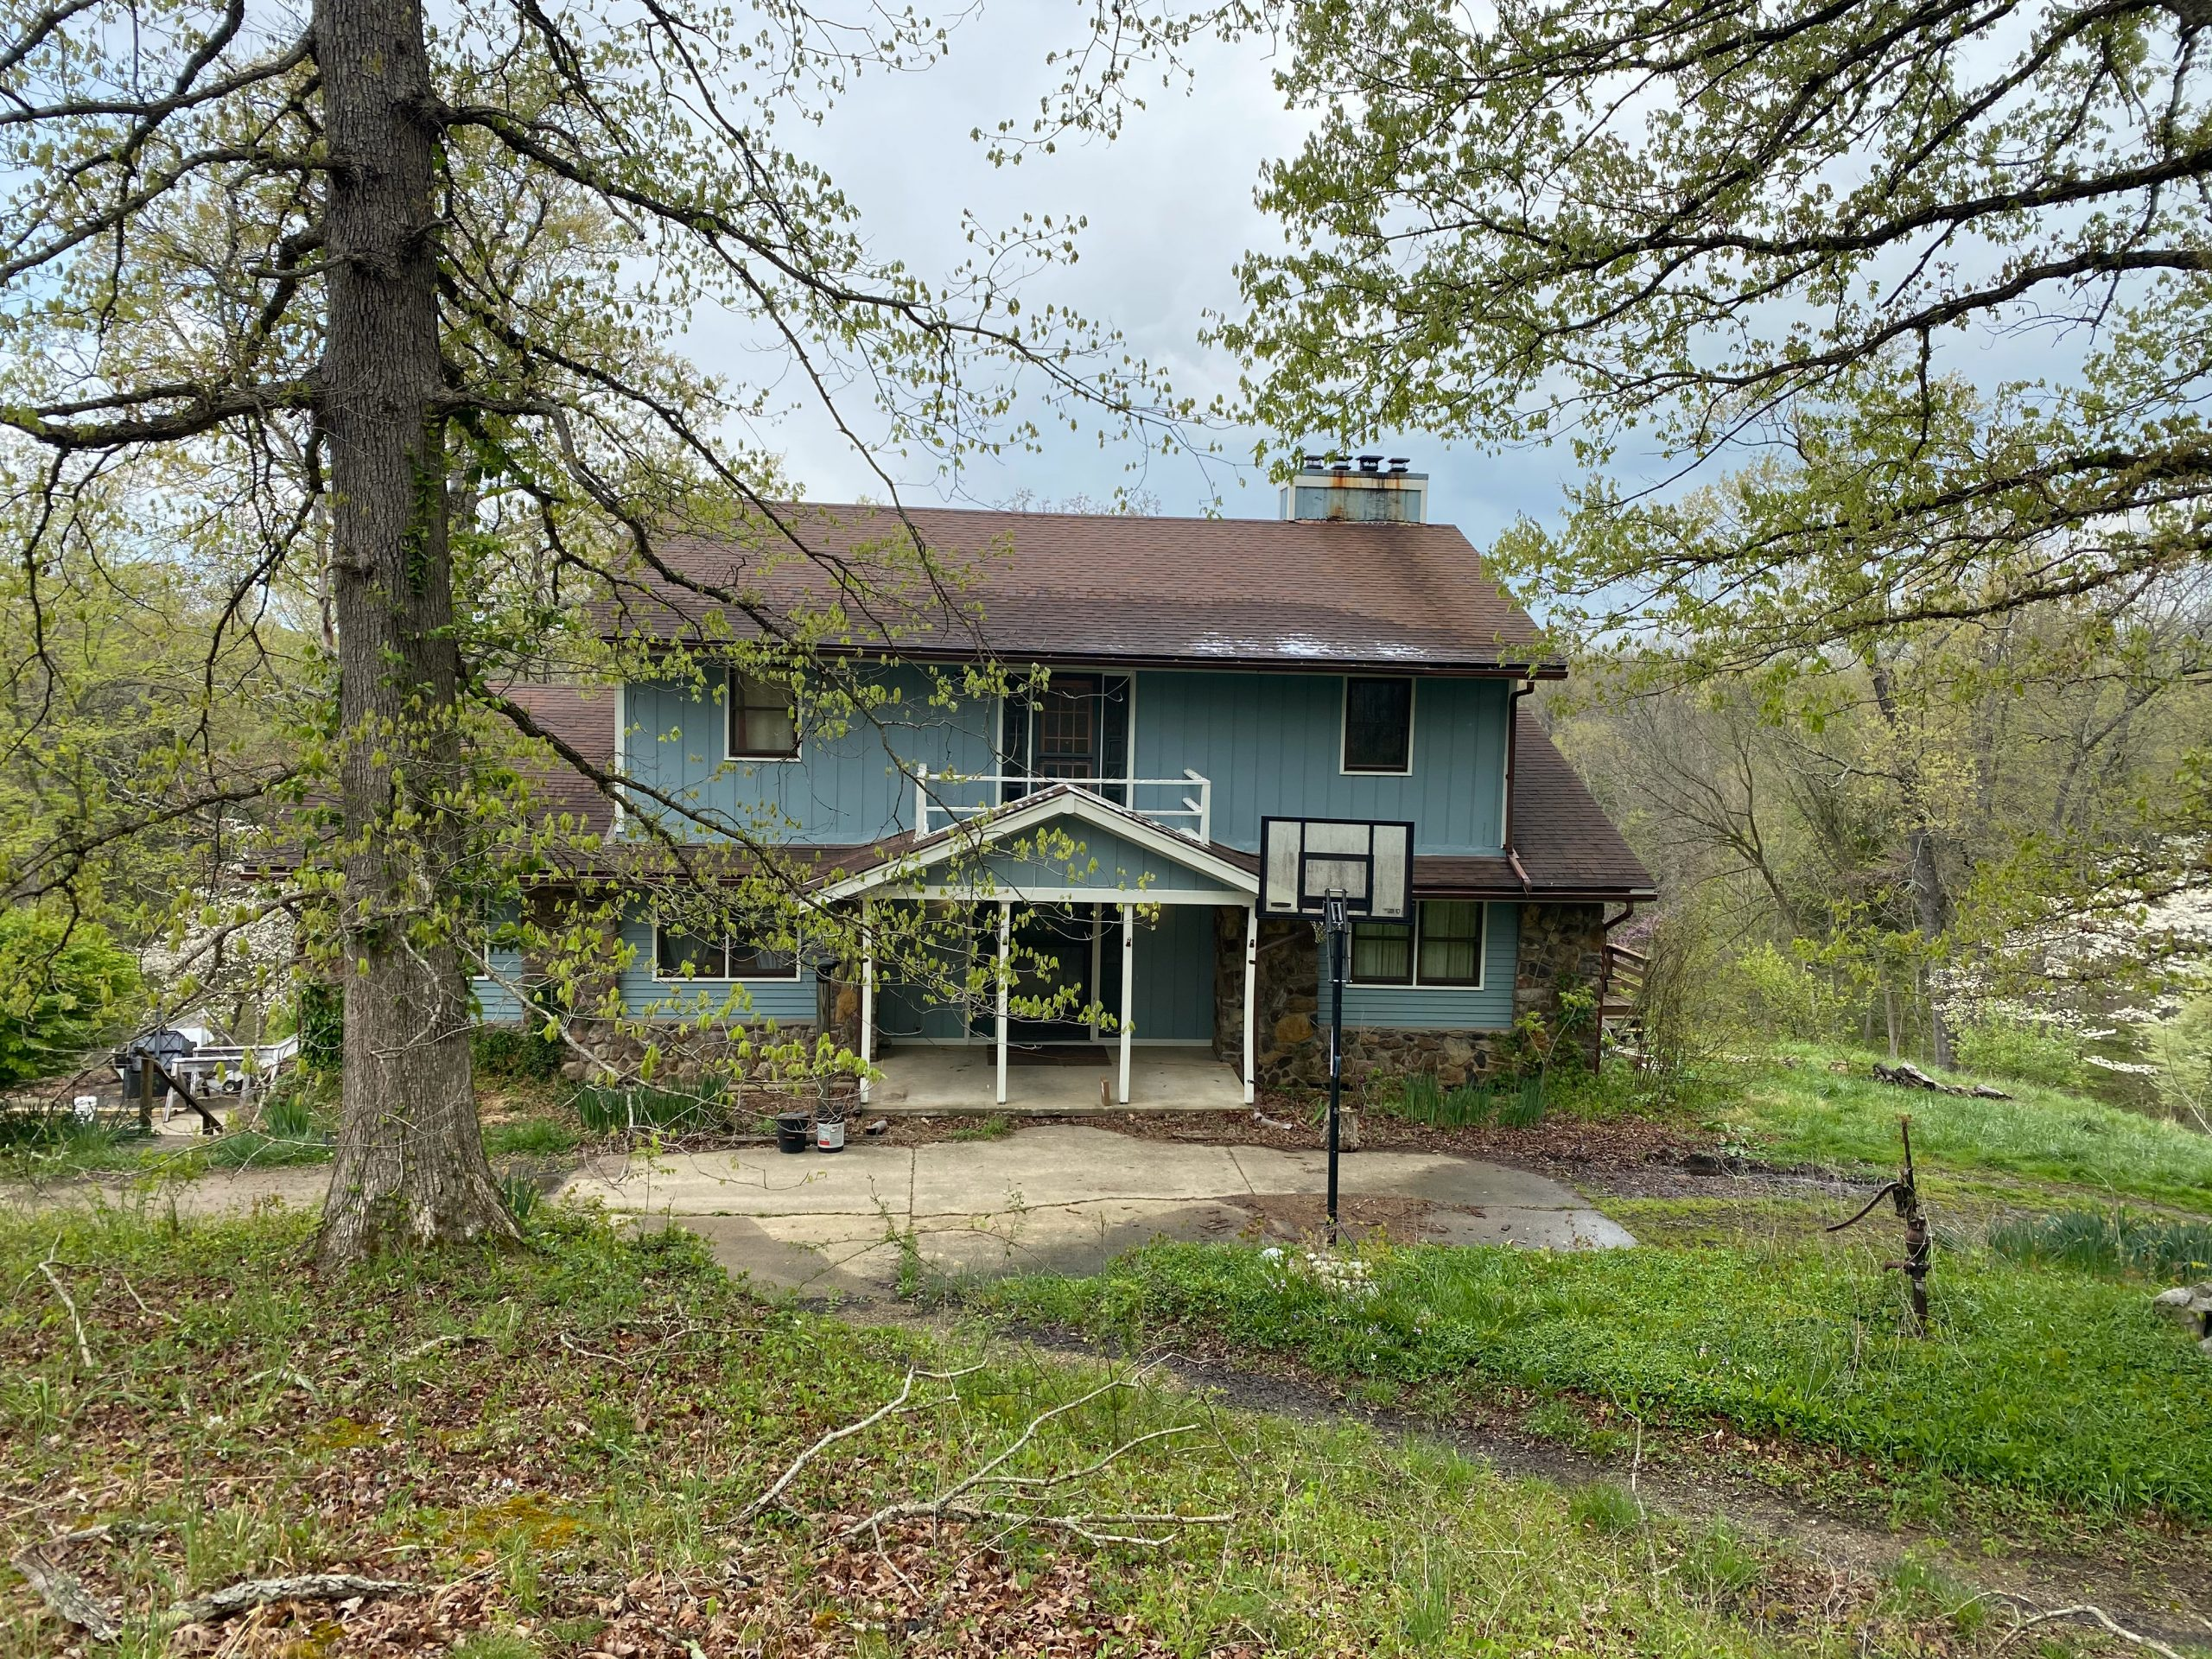 Auction   Home   22 Acres   Barn   Personal Property   Saturday, May 22nd @ 10:00 am EDT